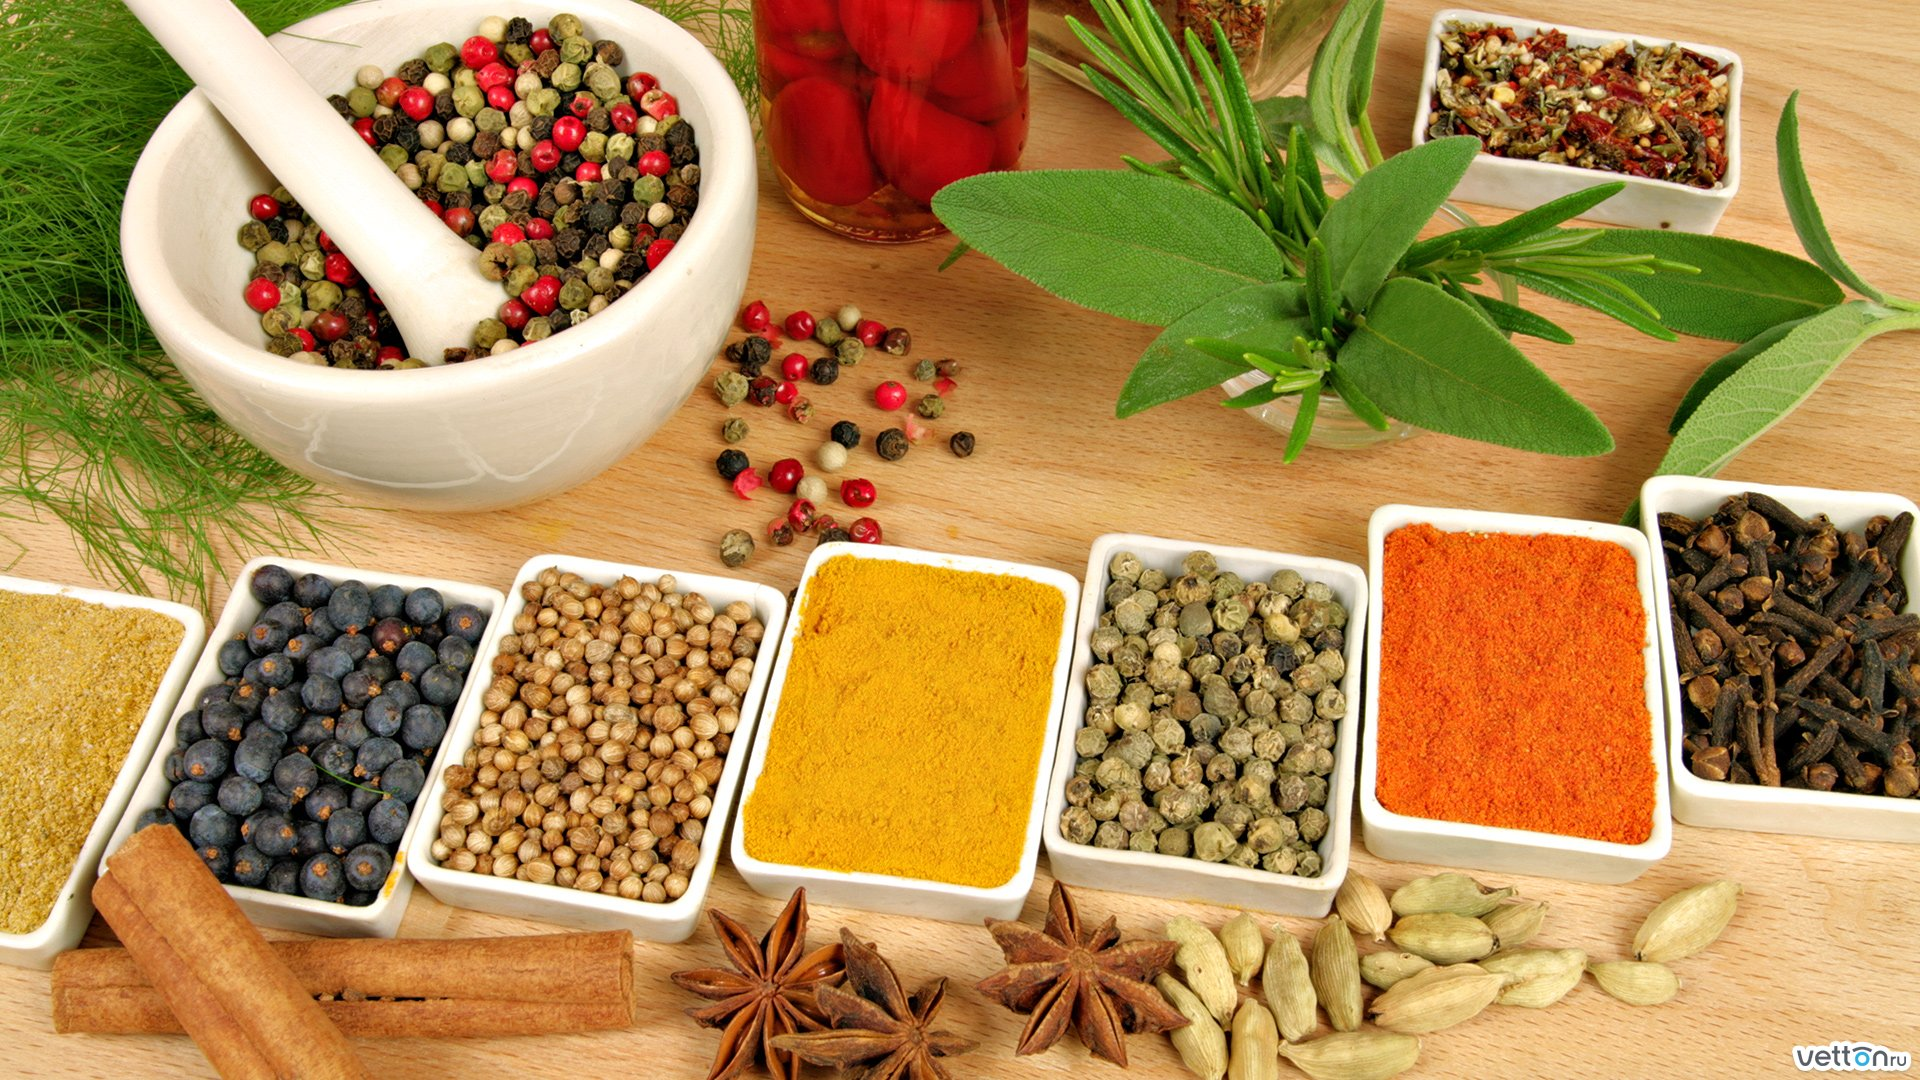 Ayurveda Diet and Lifestyle Consultant